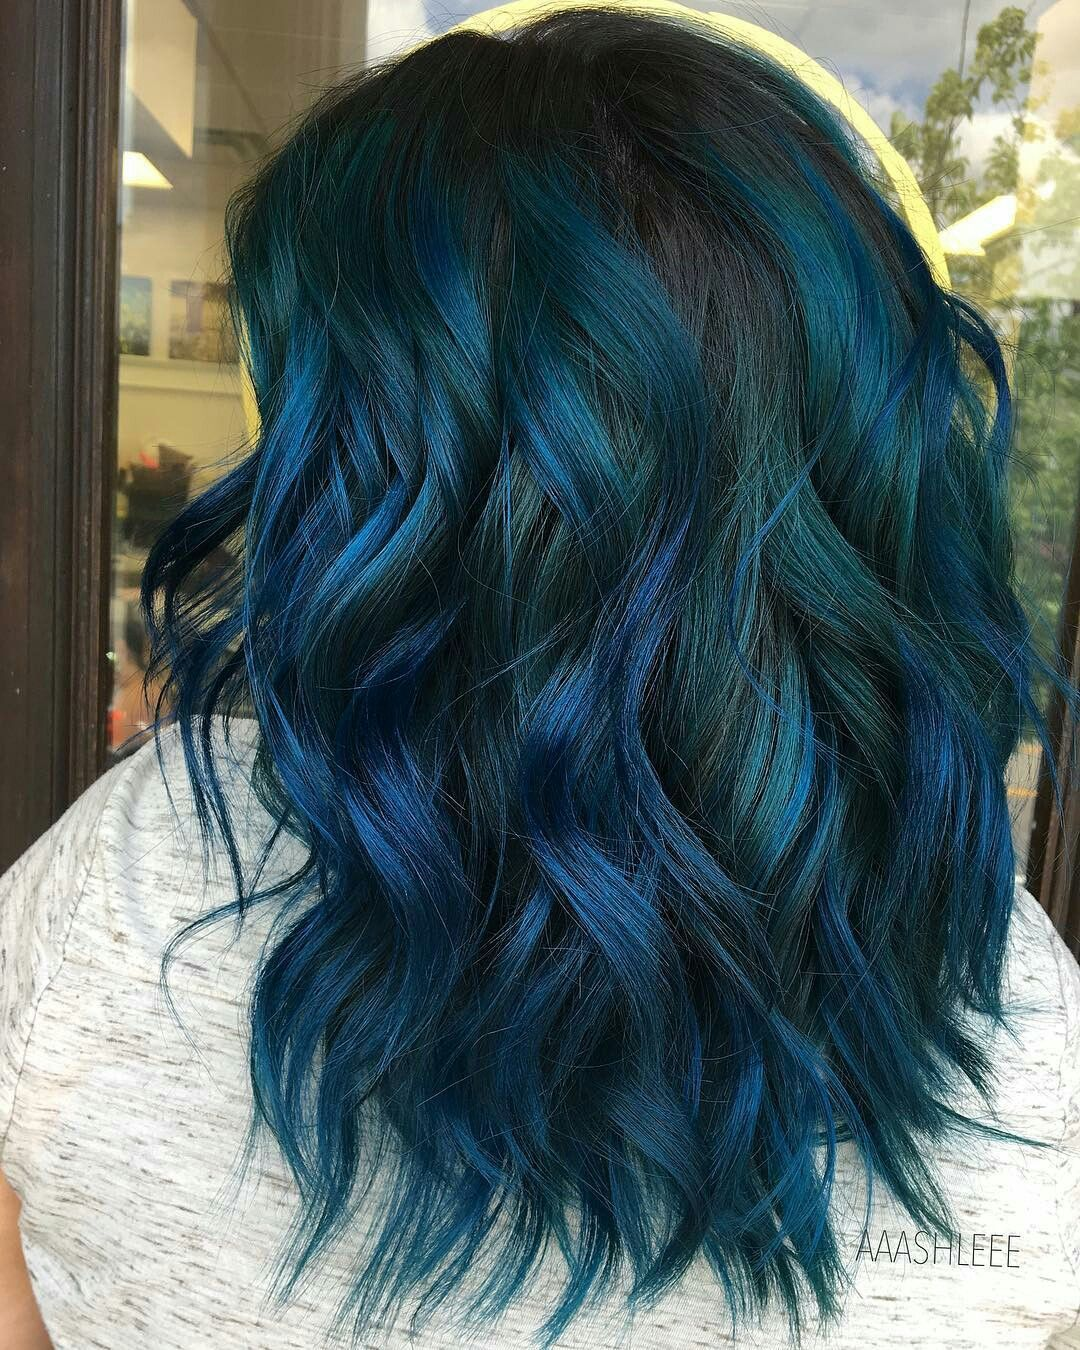 Hair Color Hairstyles Coloredhair Yea Instagram Posts